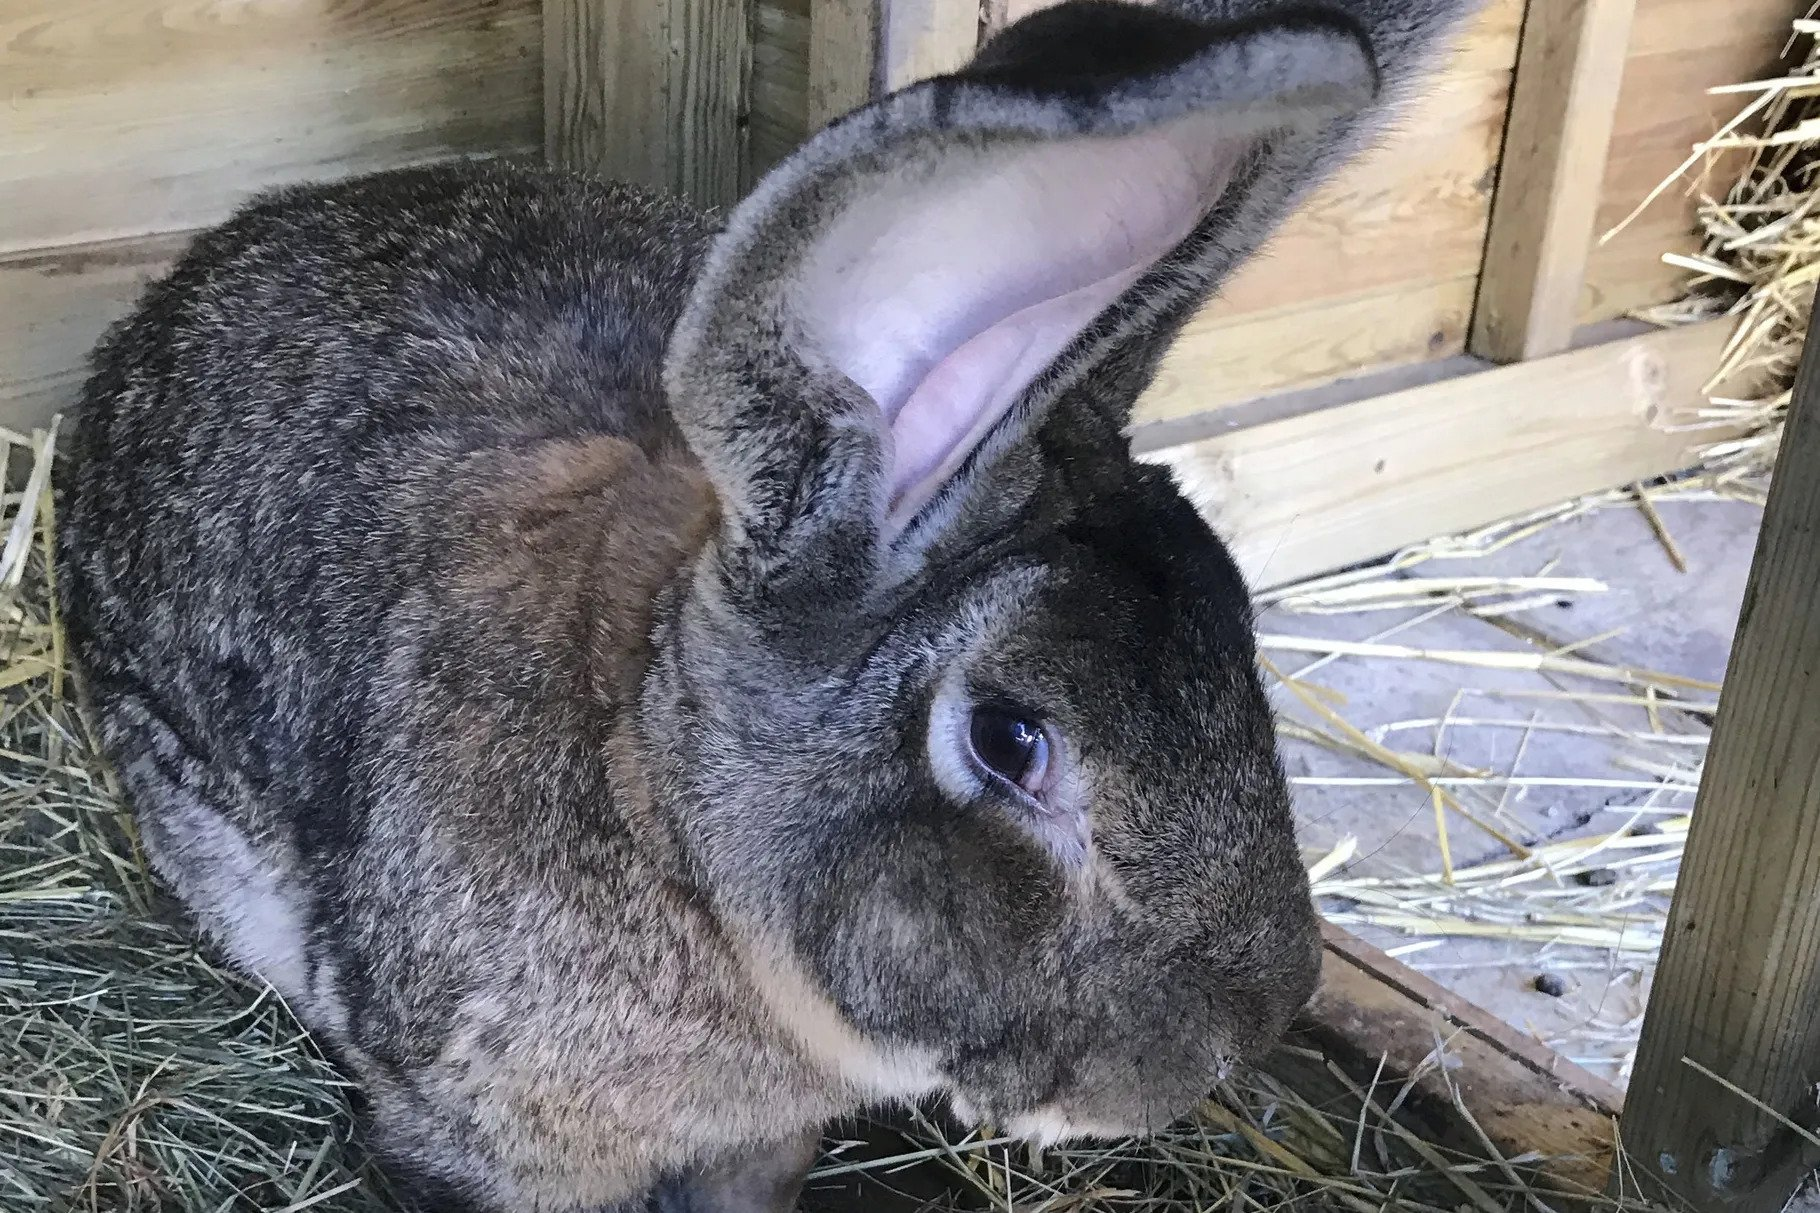 Darius, The World's Longest Bunny, Has Gone Missing!